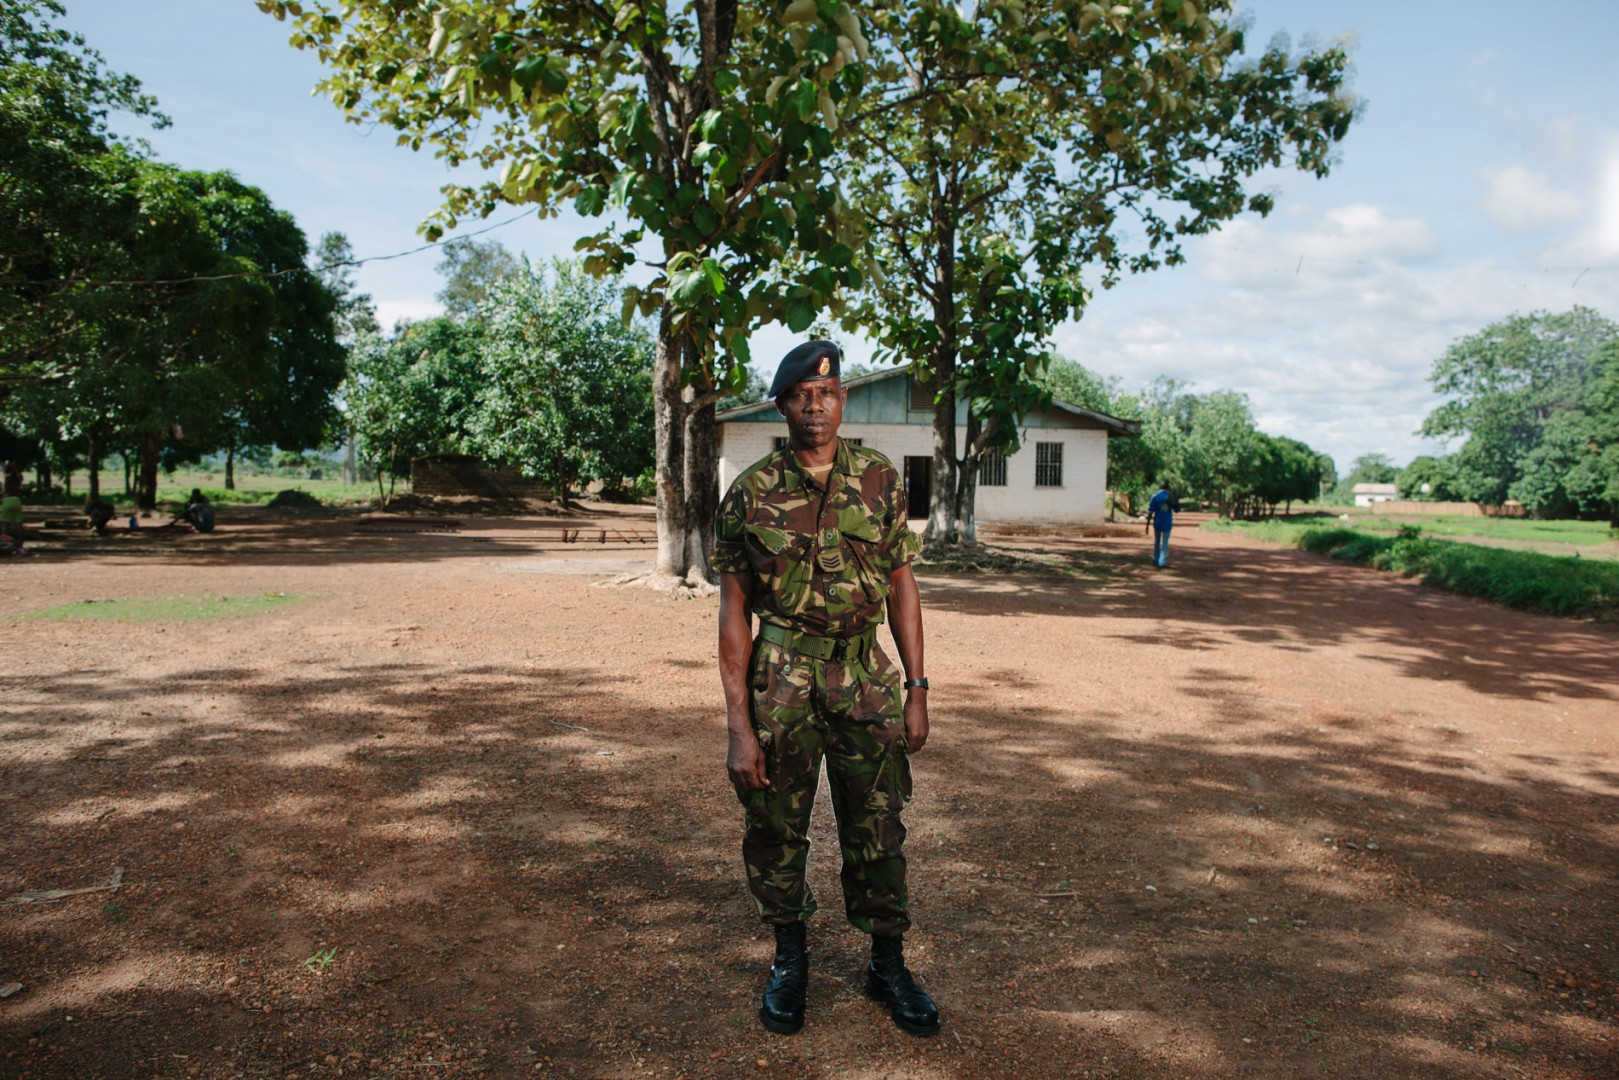 Sgt Edward Kamara, from the battalion based next to where the new school is being built.